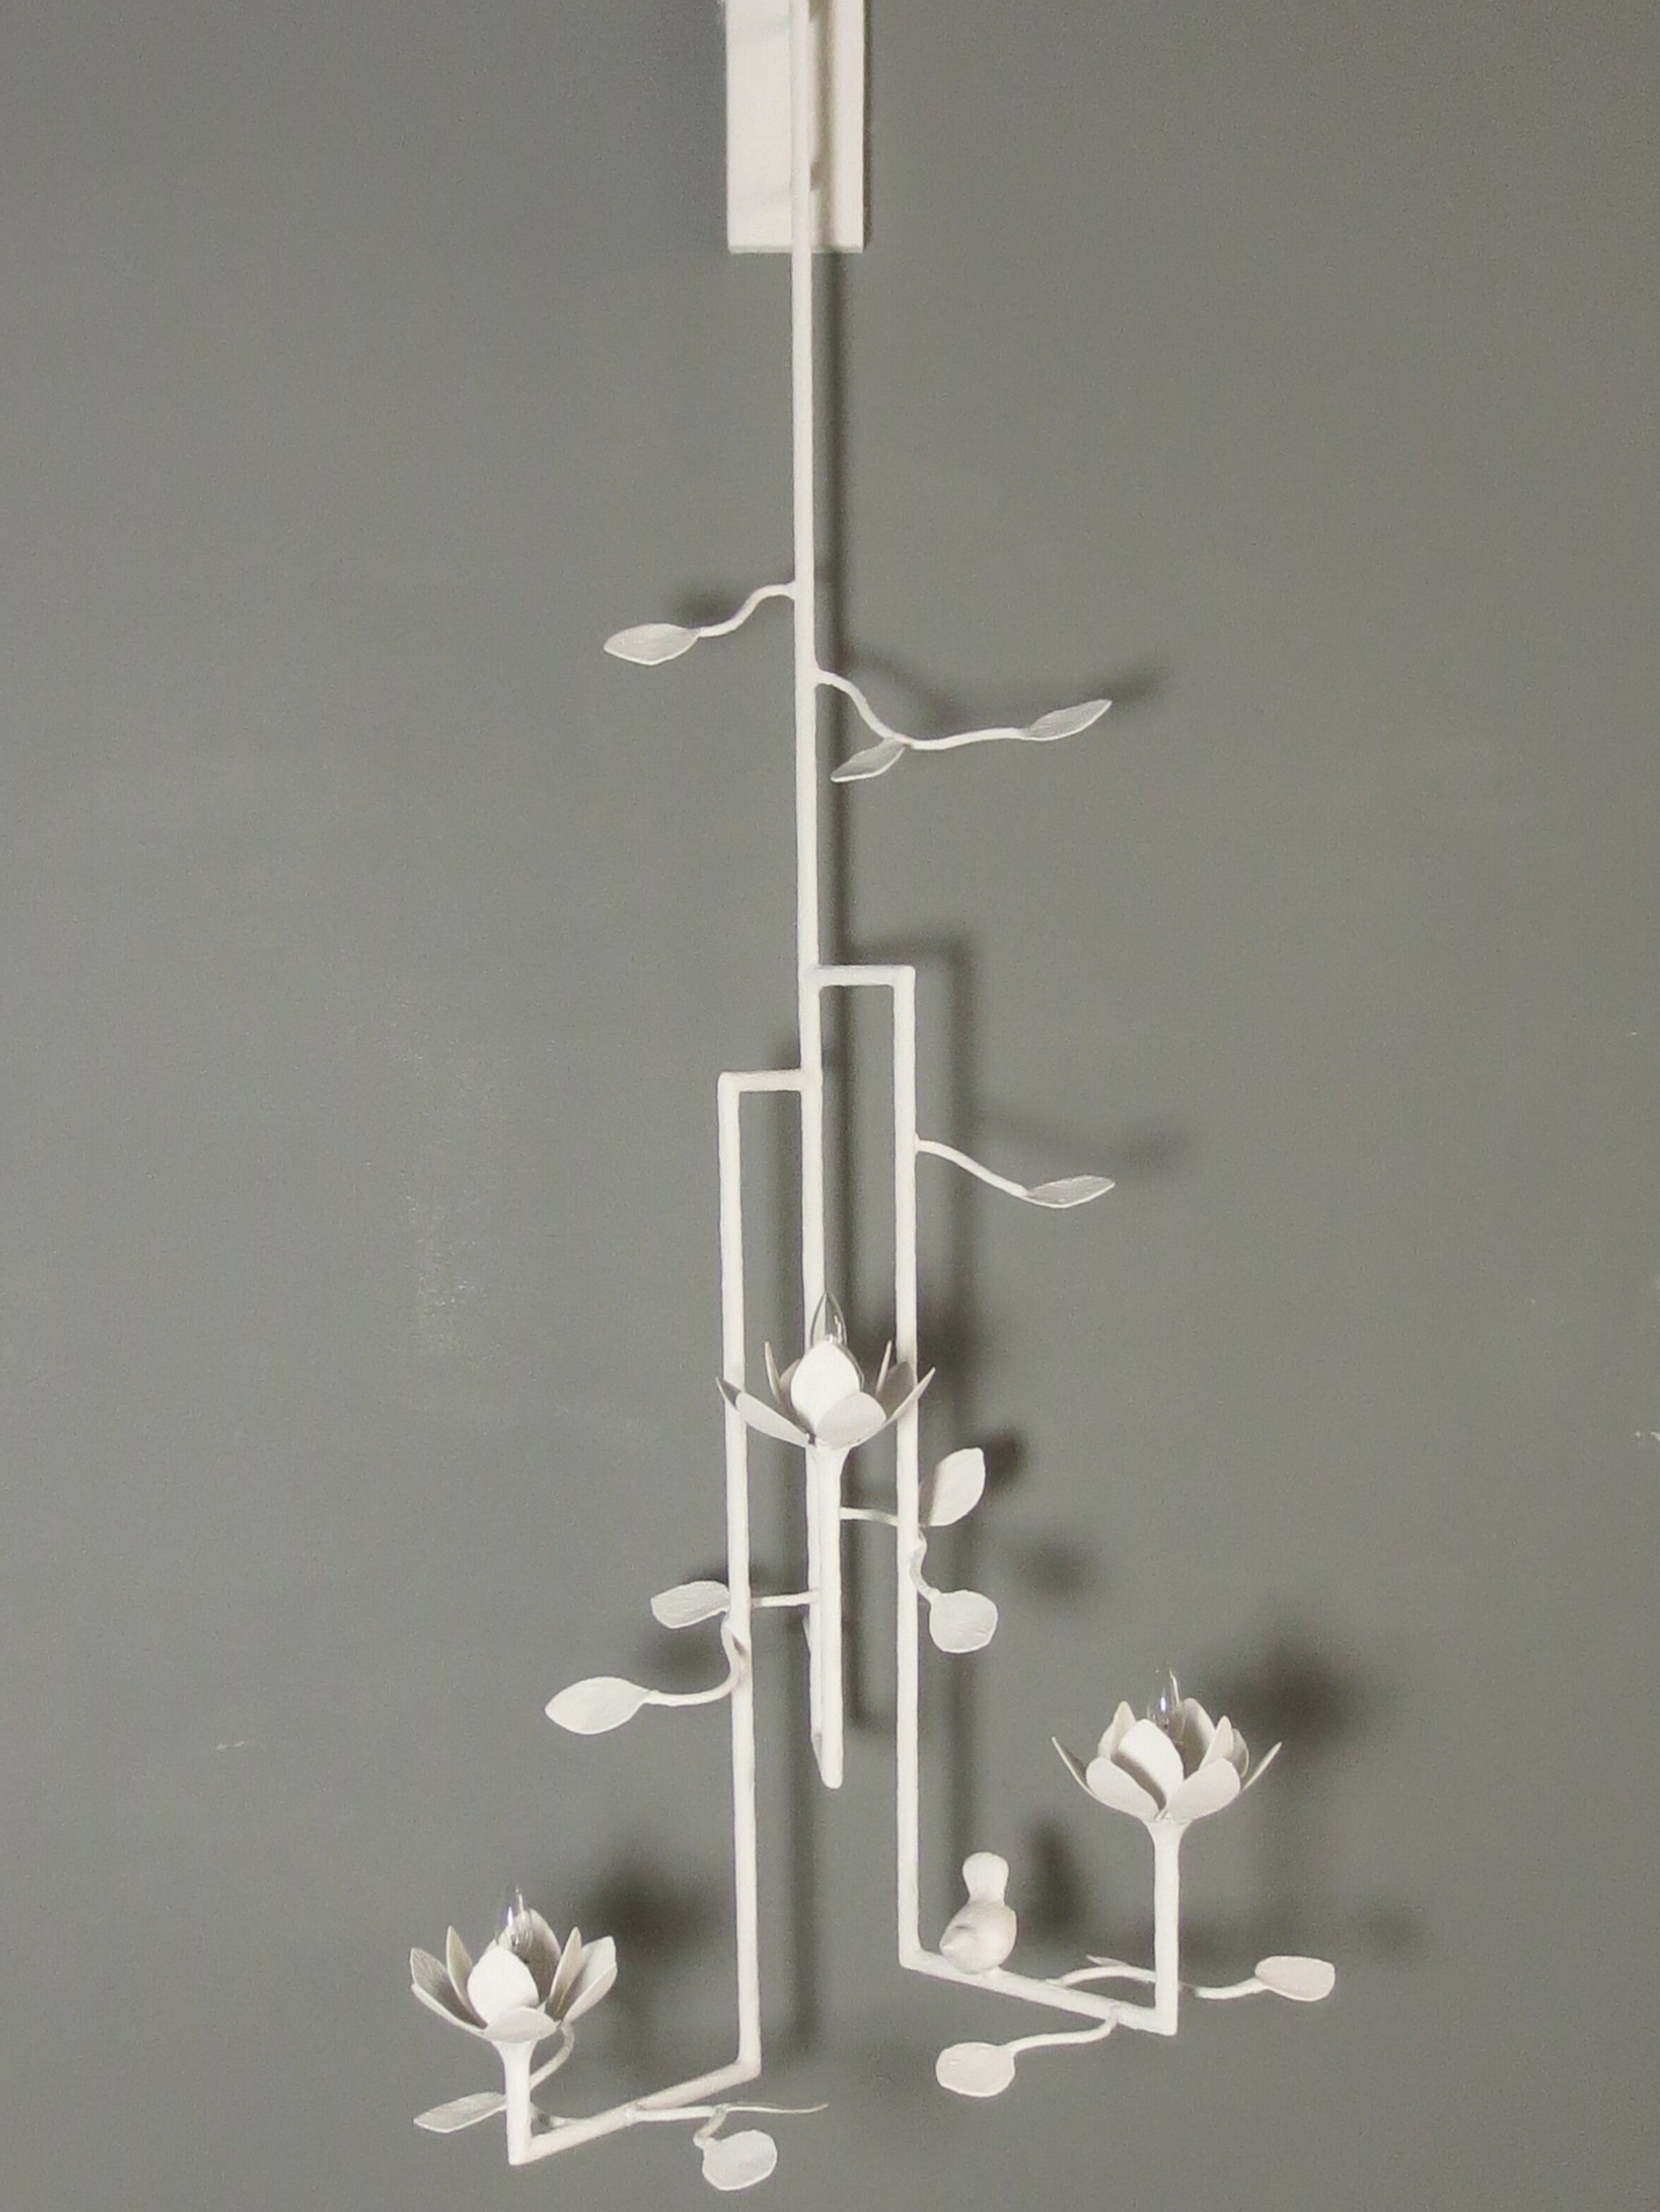 Lotus 3 Arm Wall Sconce with Bird